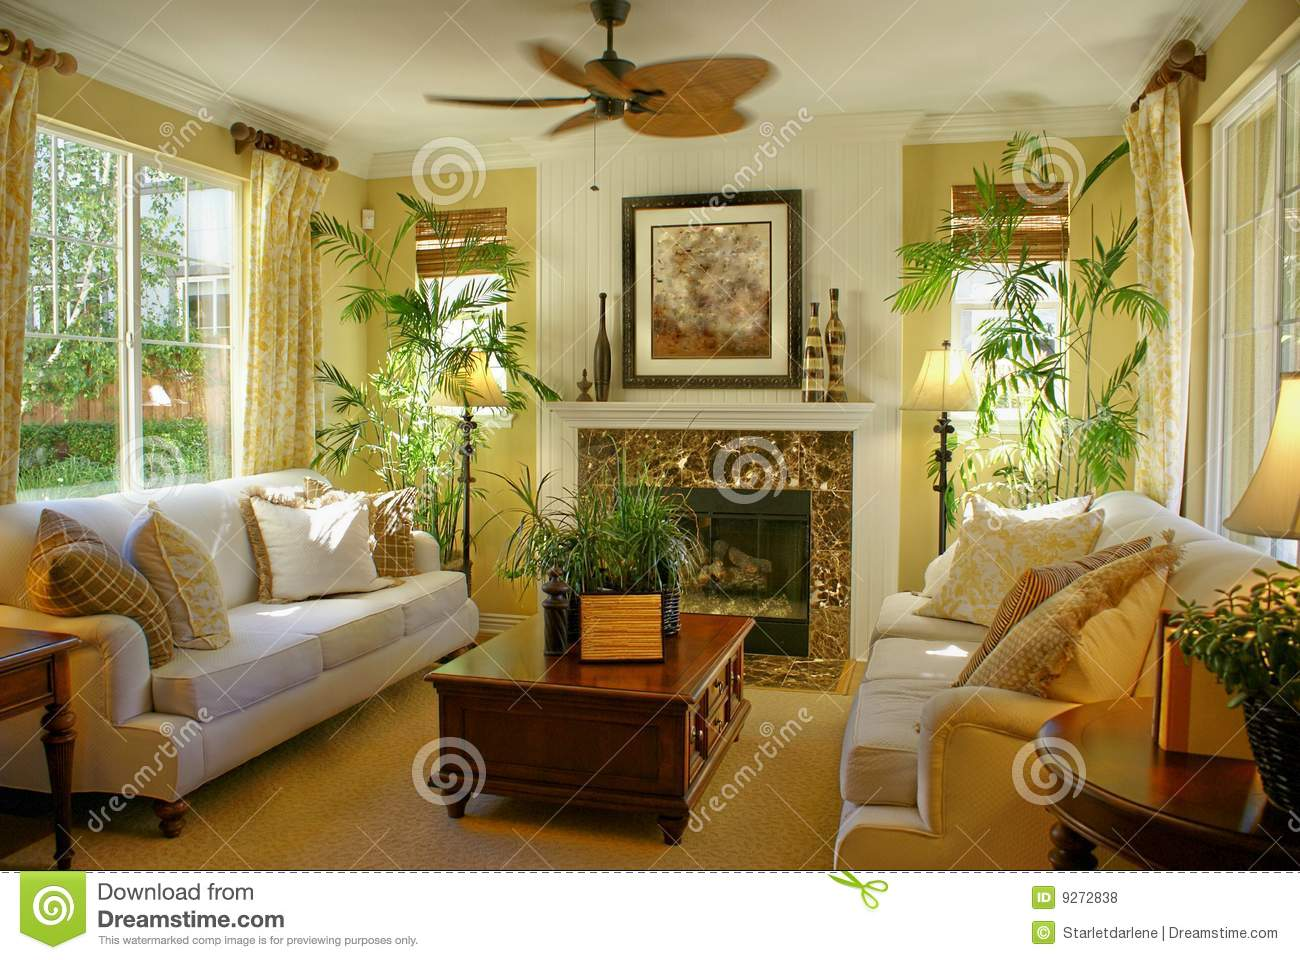 Upscale Ceiling Fan Sunny Yellow Living Room W Fan Stock Photo Image Of Upscale